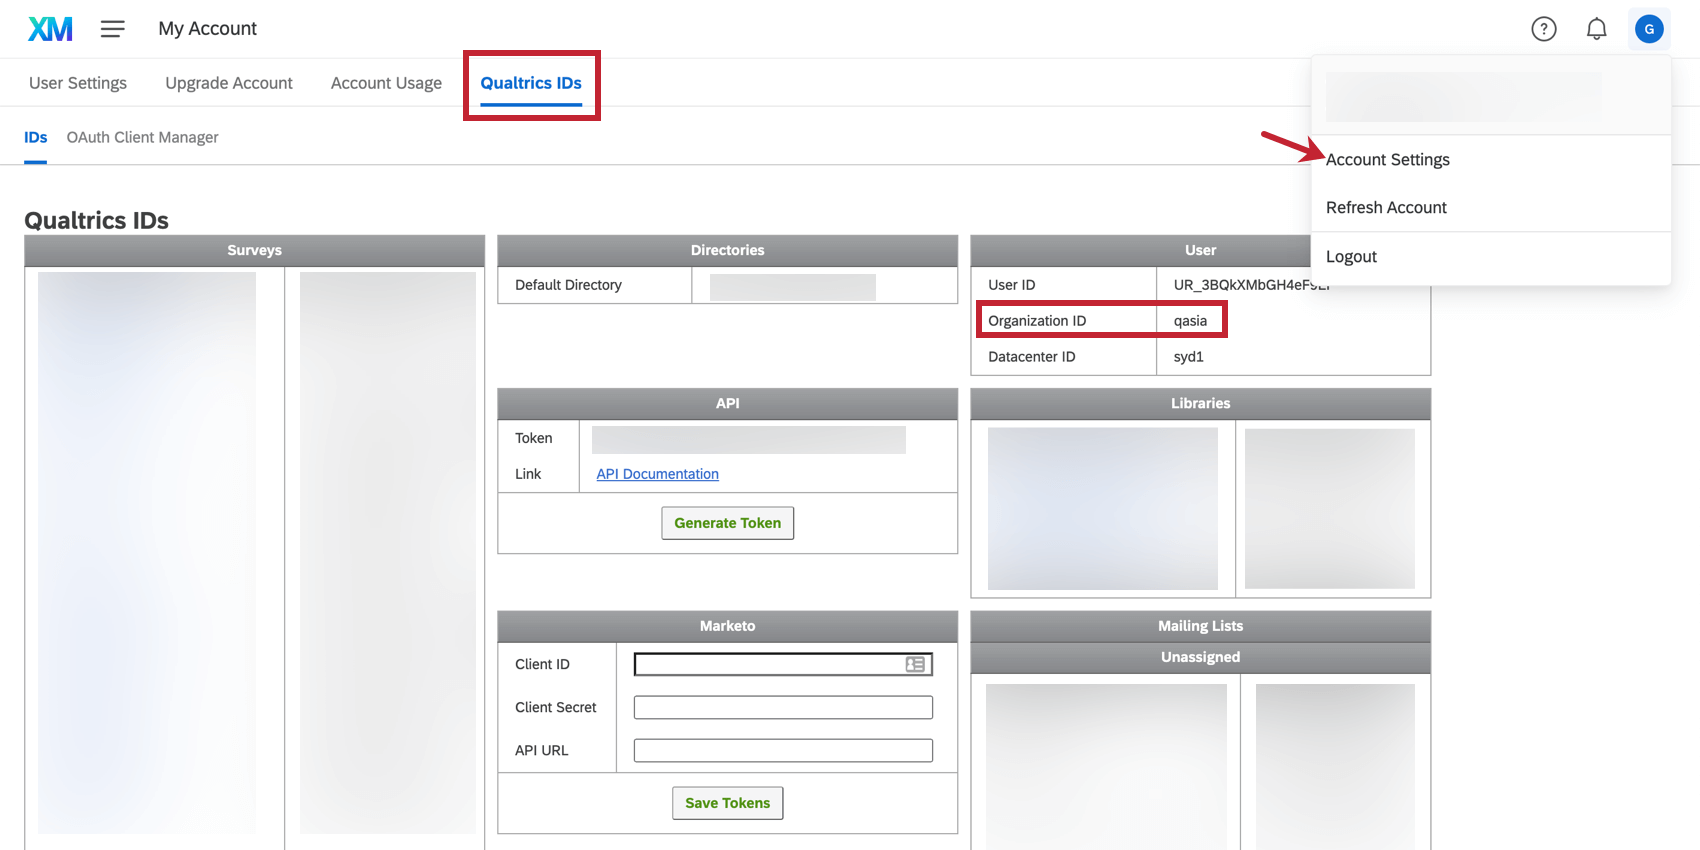 Finding the Organization ID in the Qualtrics IDs section of the Account Settings